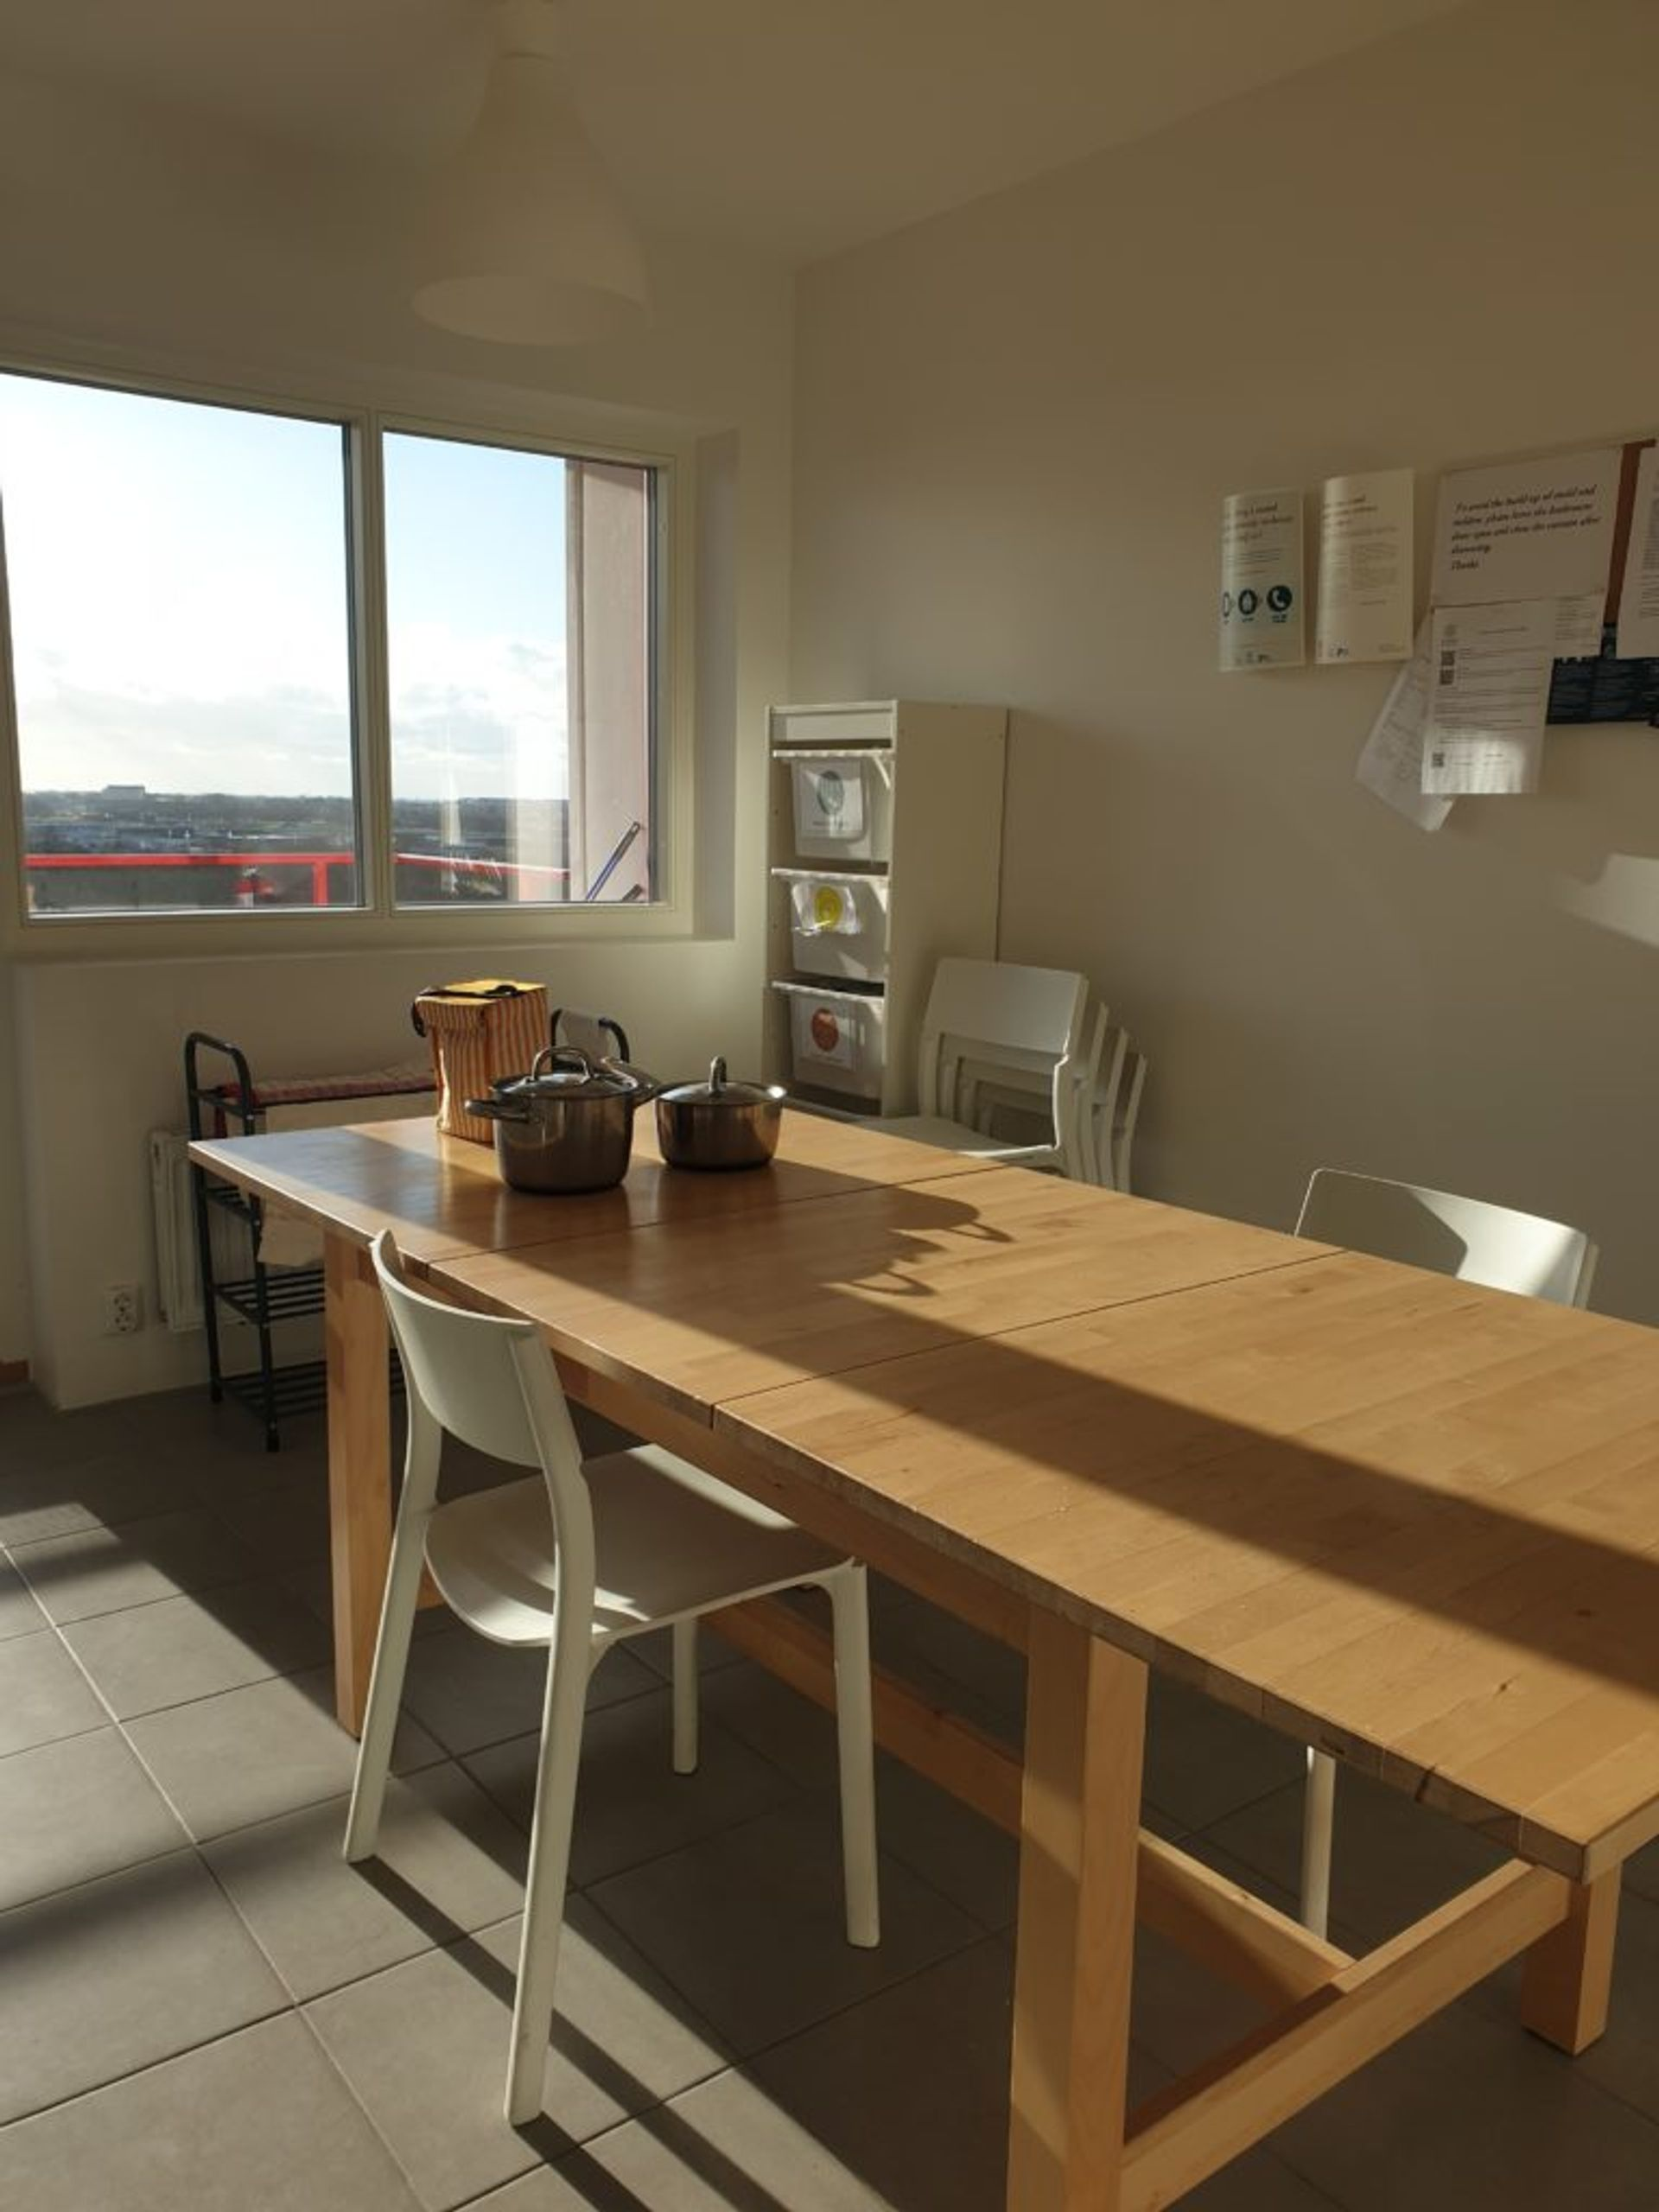 Wood table with white chairs with sun shining through window